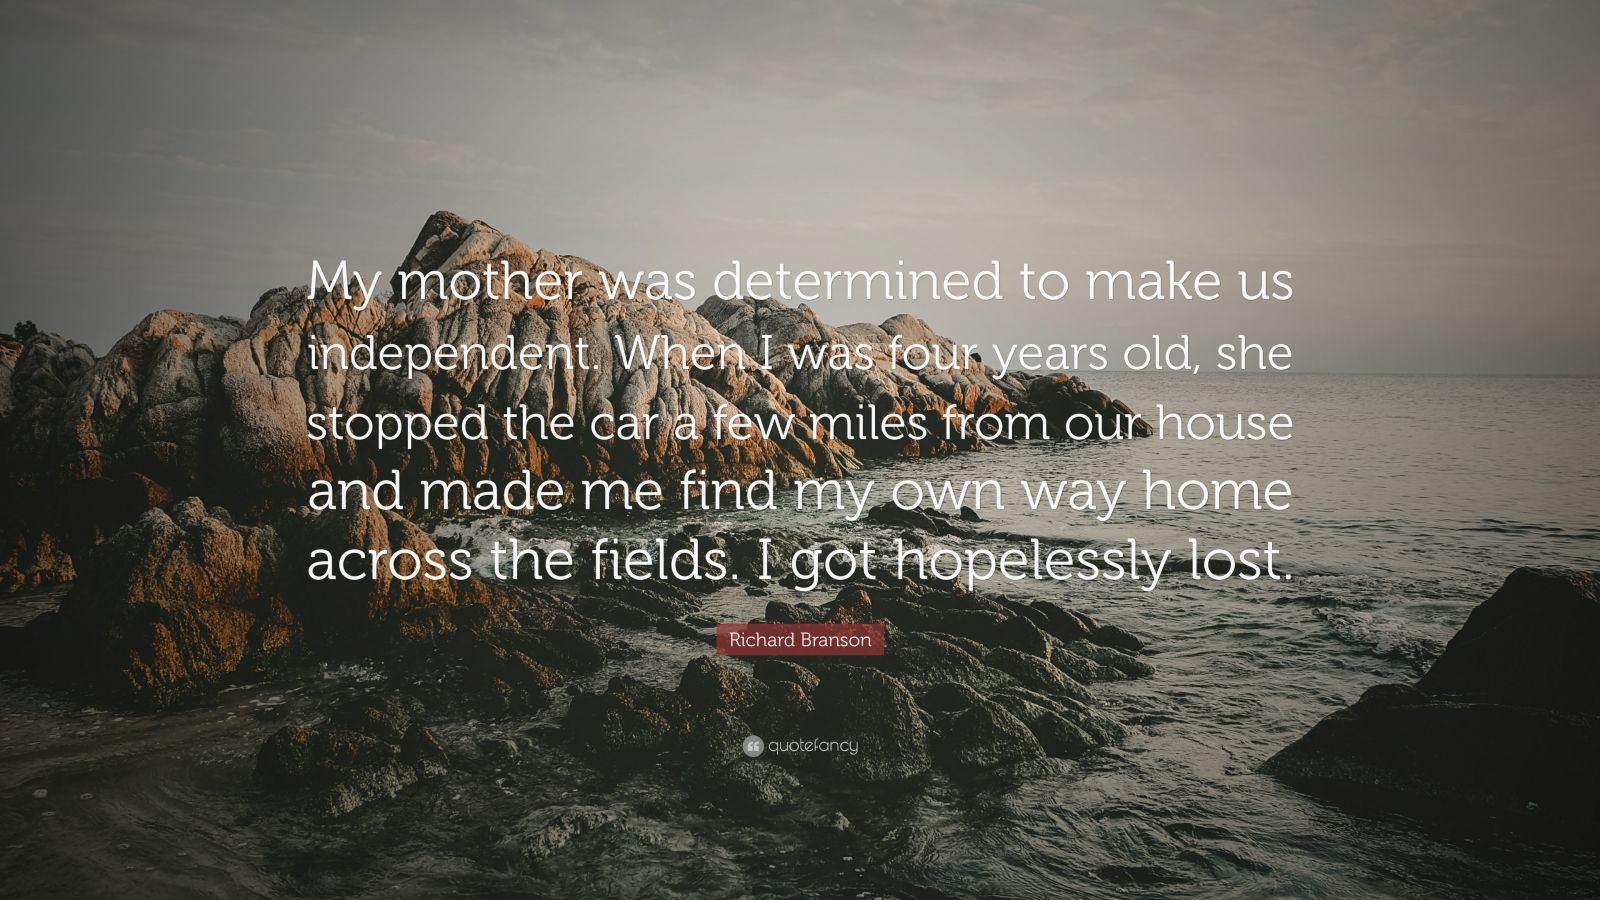 """Richard Branson Quote: """"My mother was determined to make us independent. When I was four years old, she stopped the car a few miles from our house and made me find my own way home across the fields. I got hopelessly lost."""""""